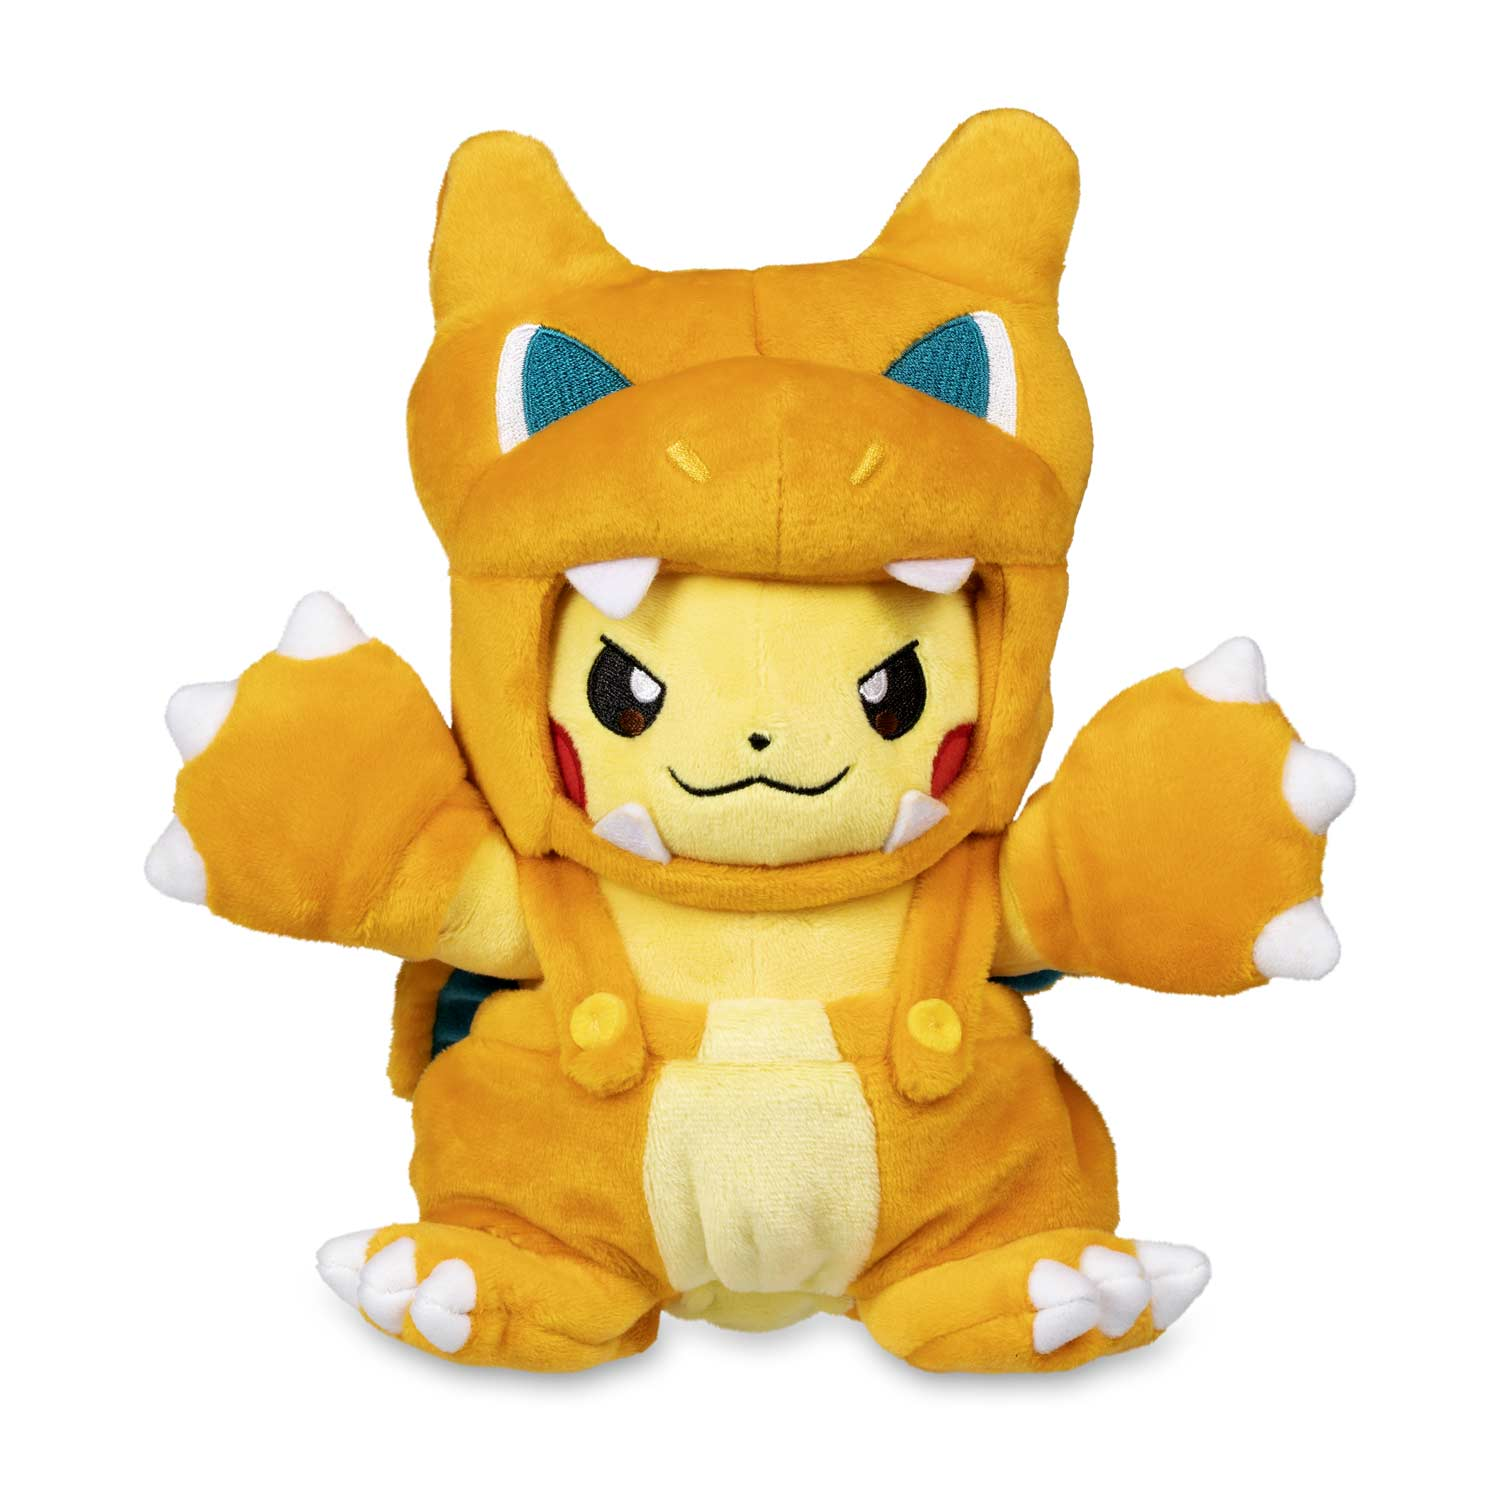 Charizard Poke Maniac Costume Pikachu Poke Plush 8 In Pokemon